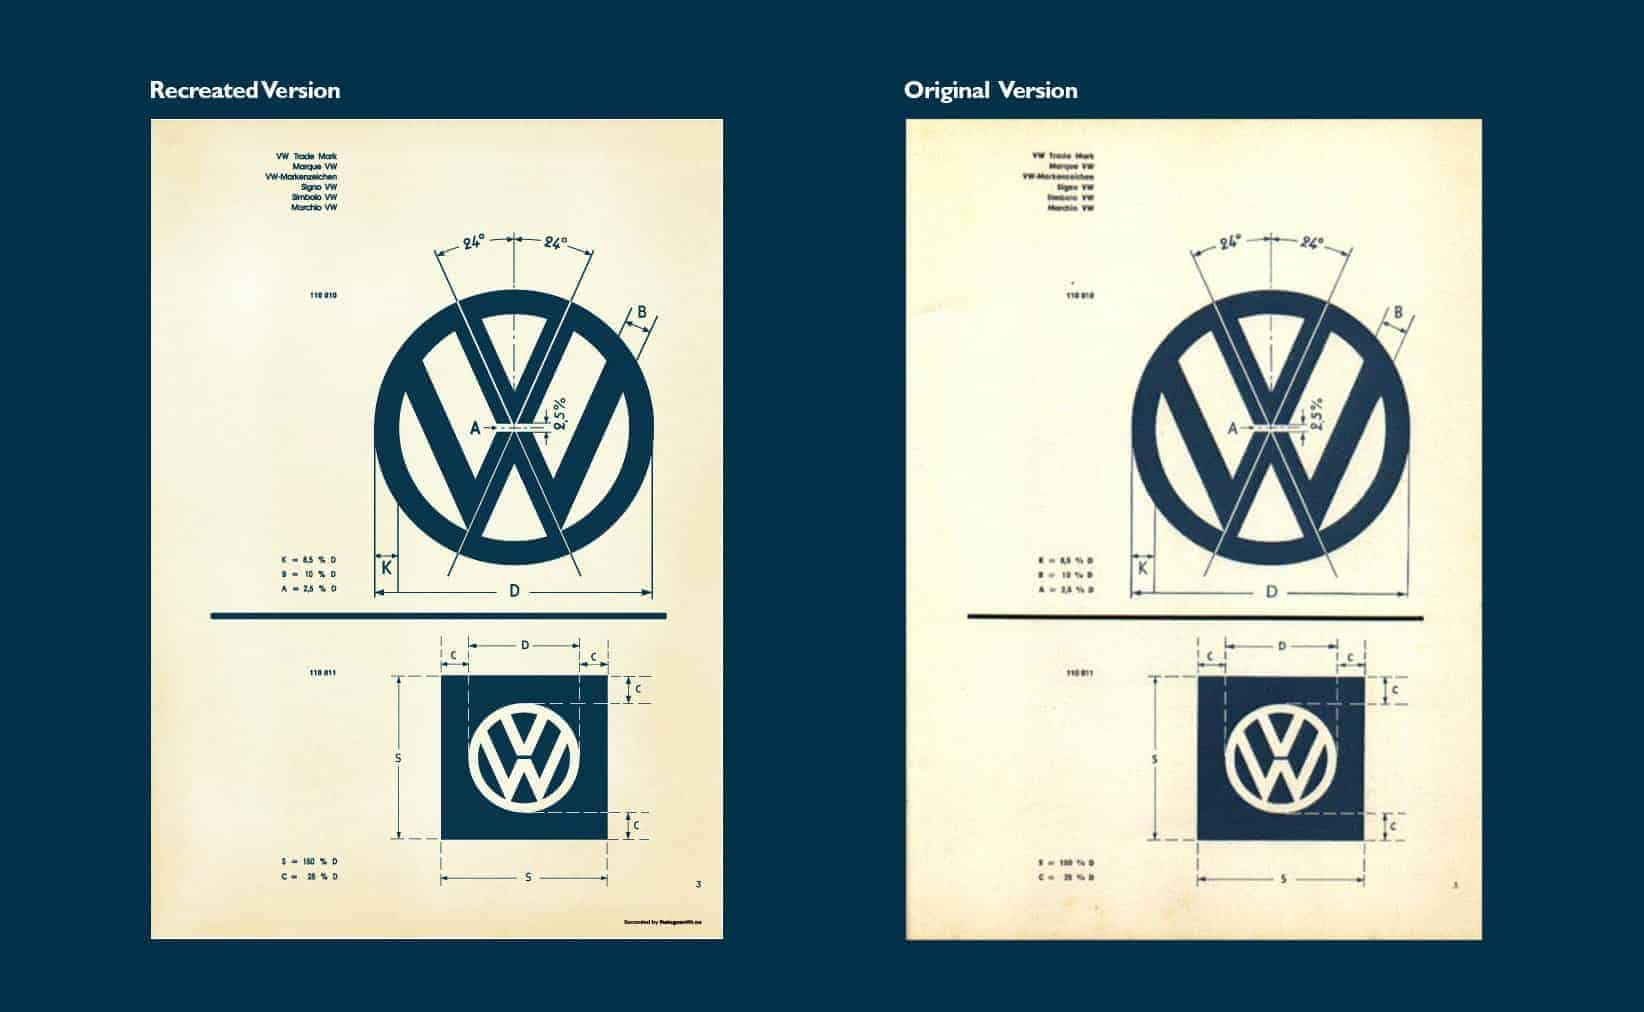 Vintage-VW-Logo-Specification-Sheet-Comparison-Recreated-1